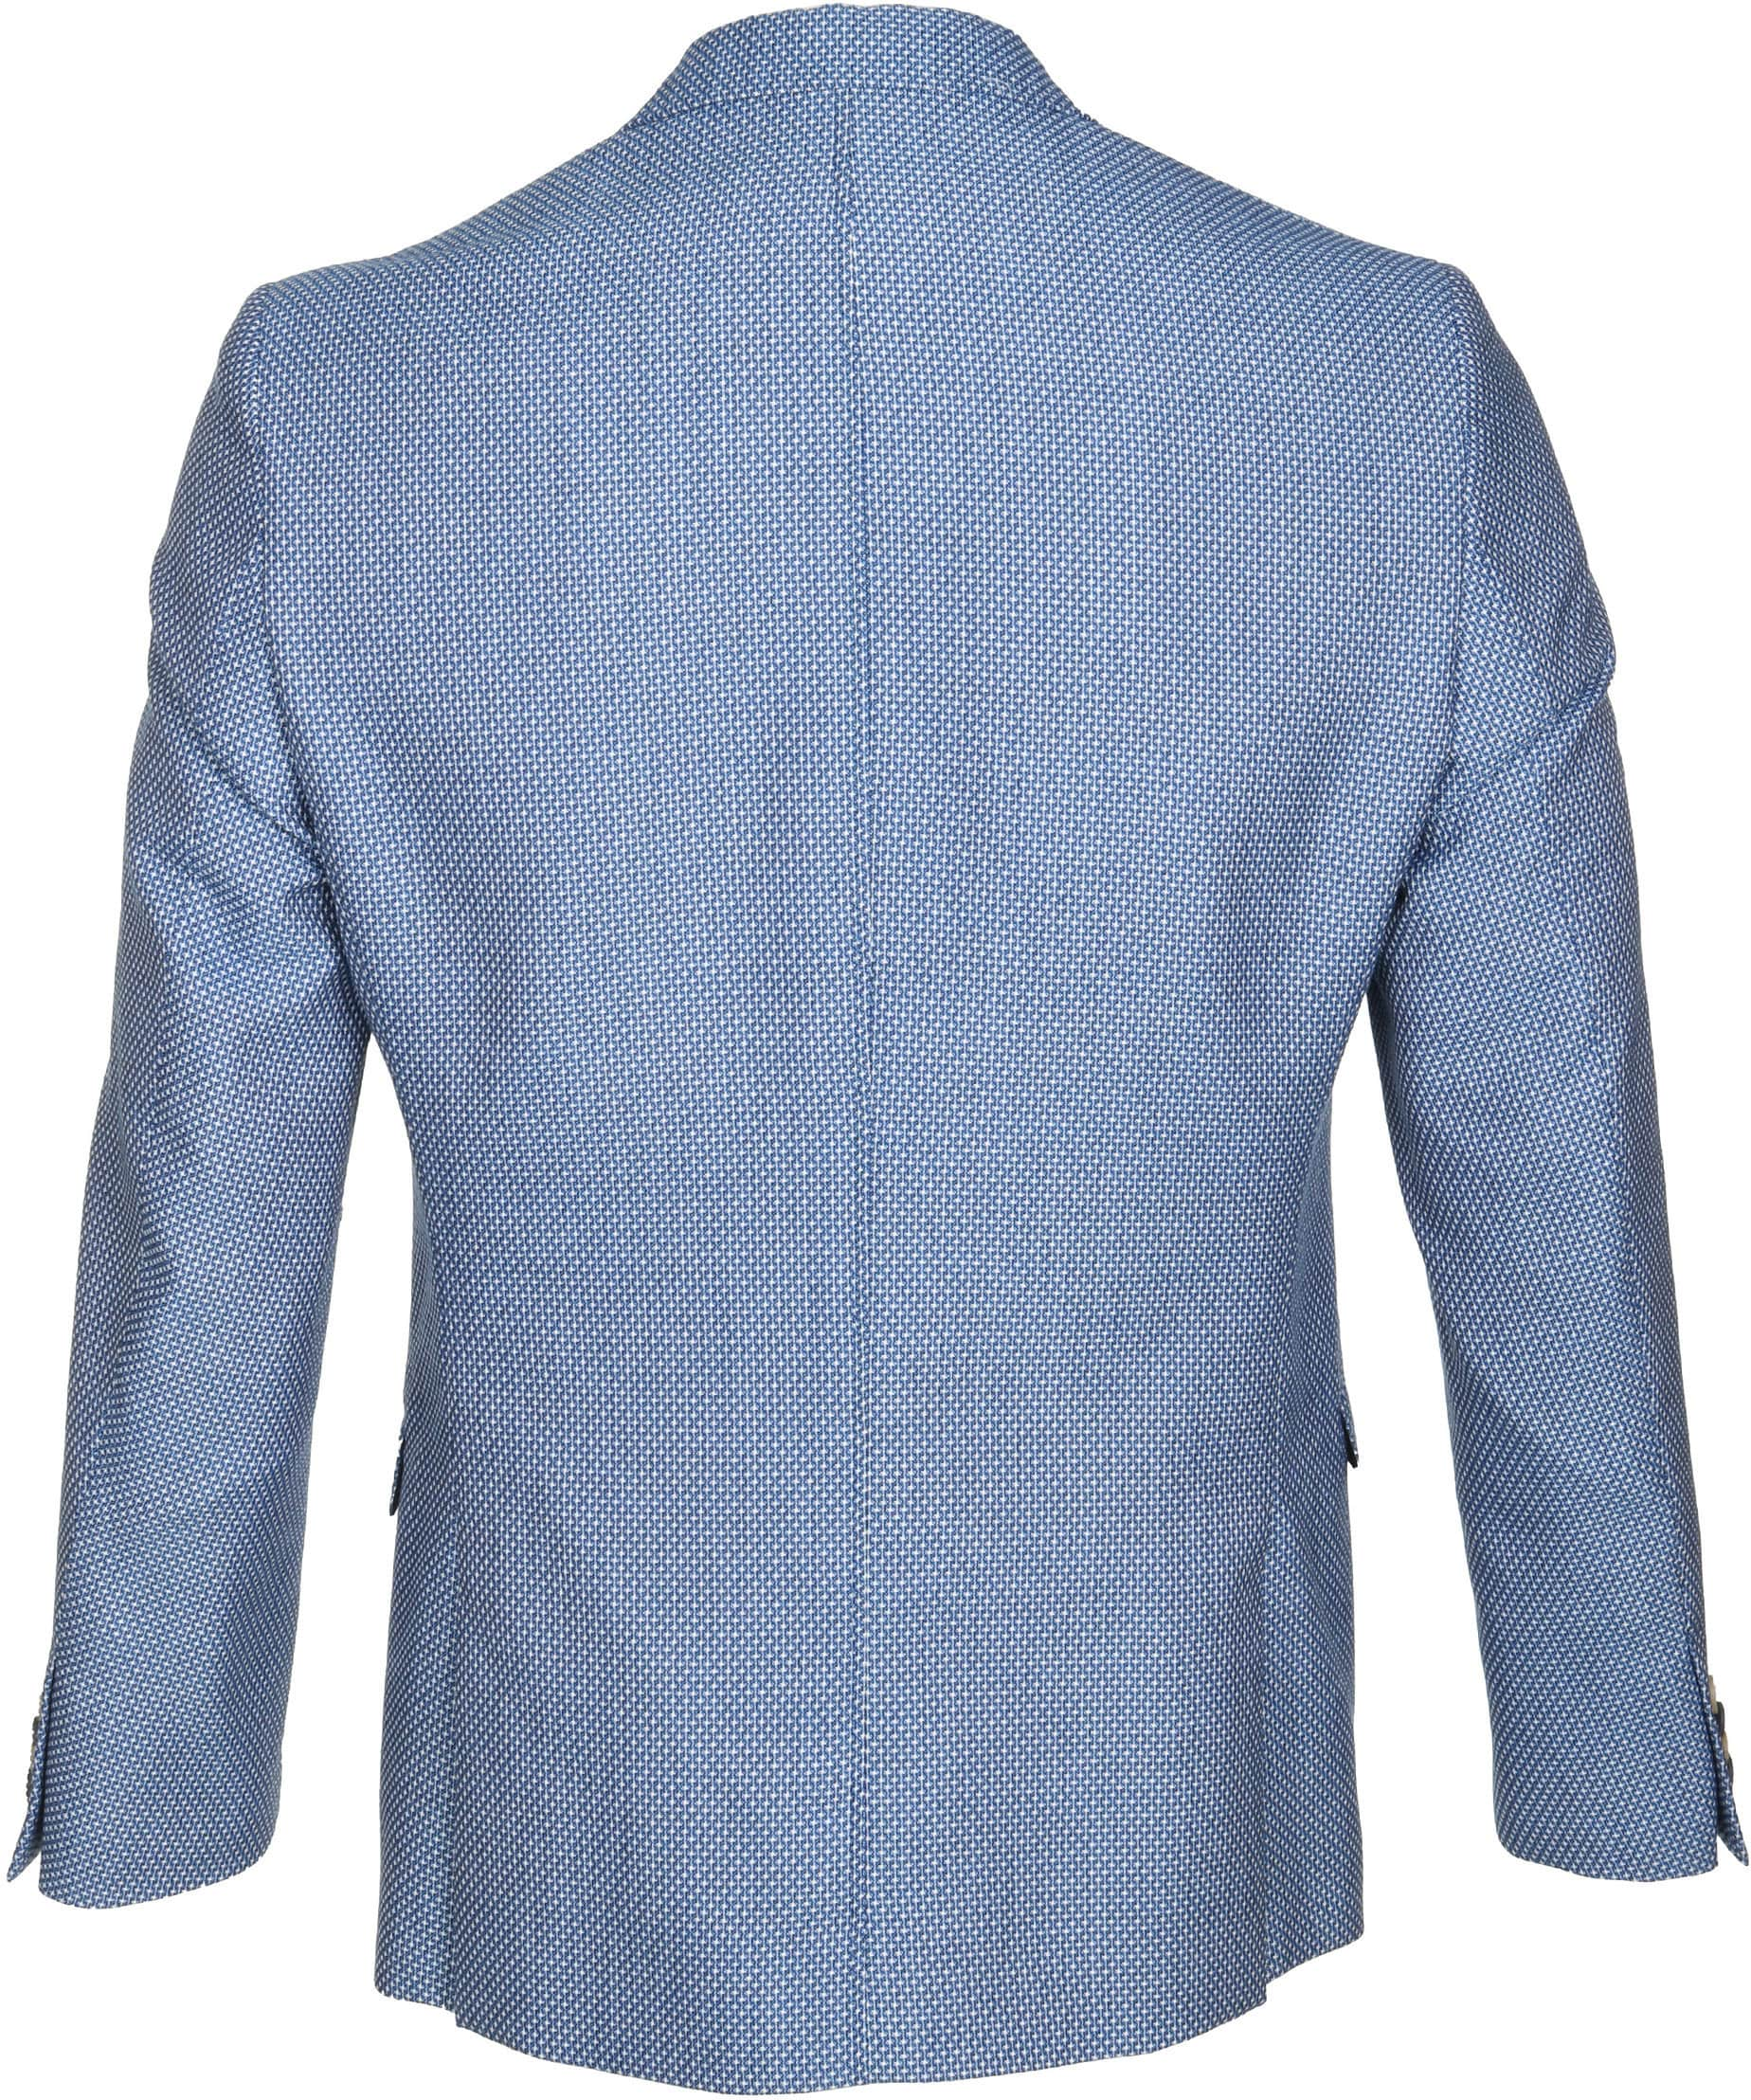 Suitable Blazer Frejus Blau foto 4